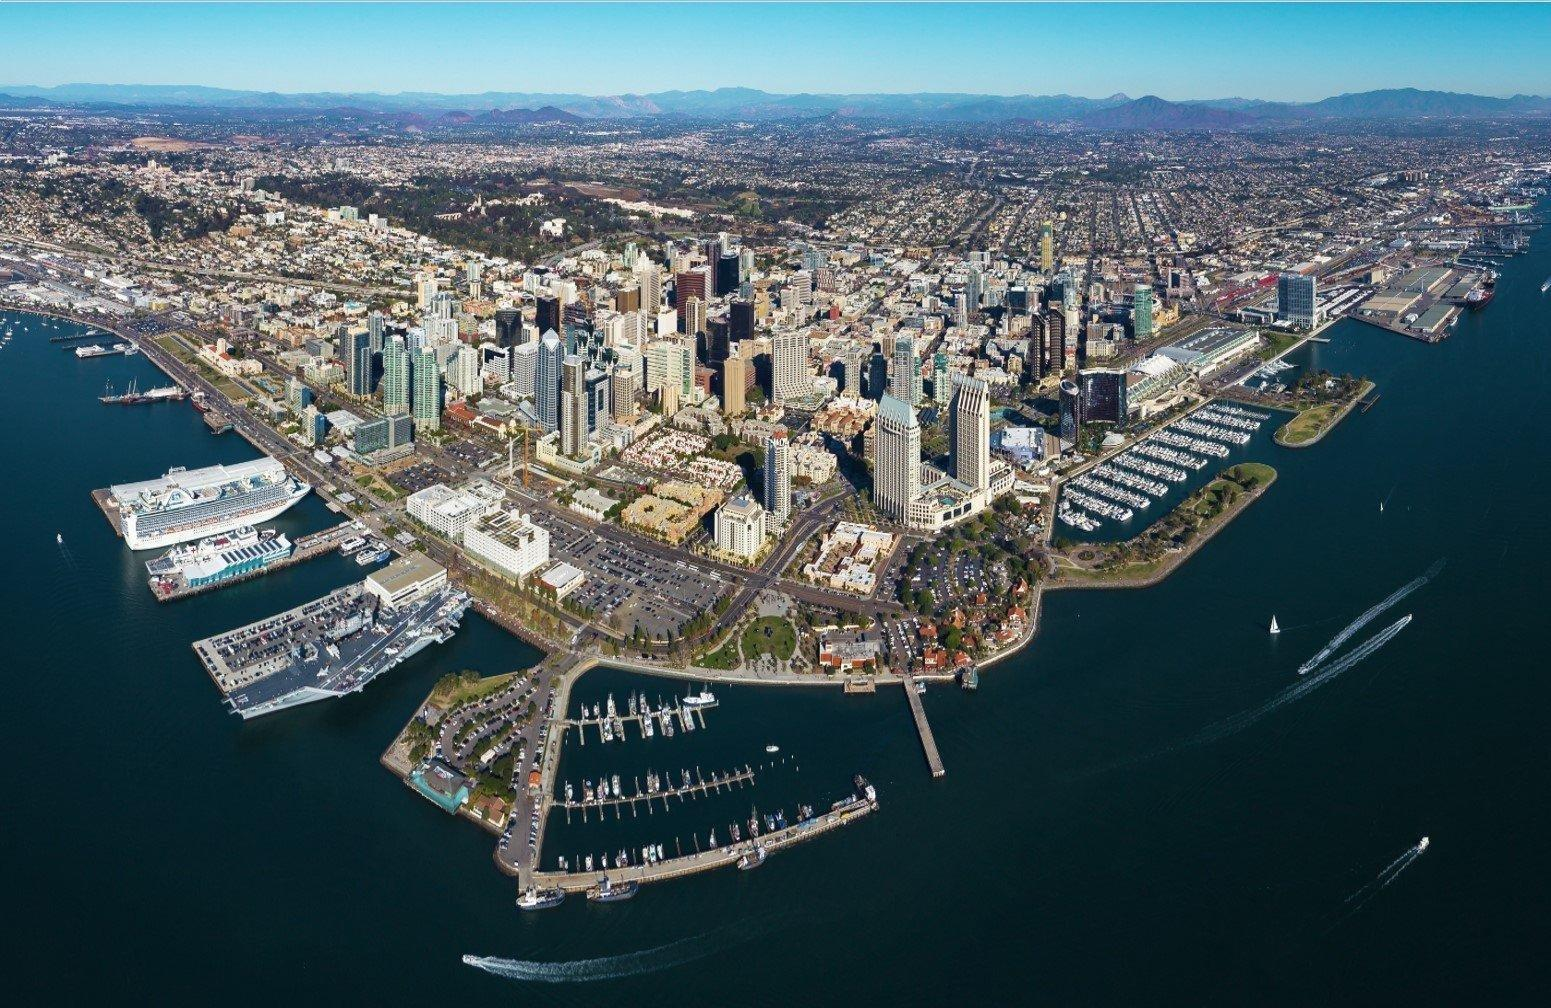 Downtown will see more than $6 billion in new projects completed between 2016 and 2020, according to a roundup by Civic San Diego.